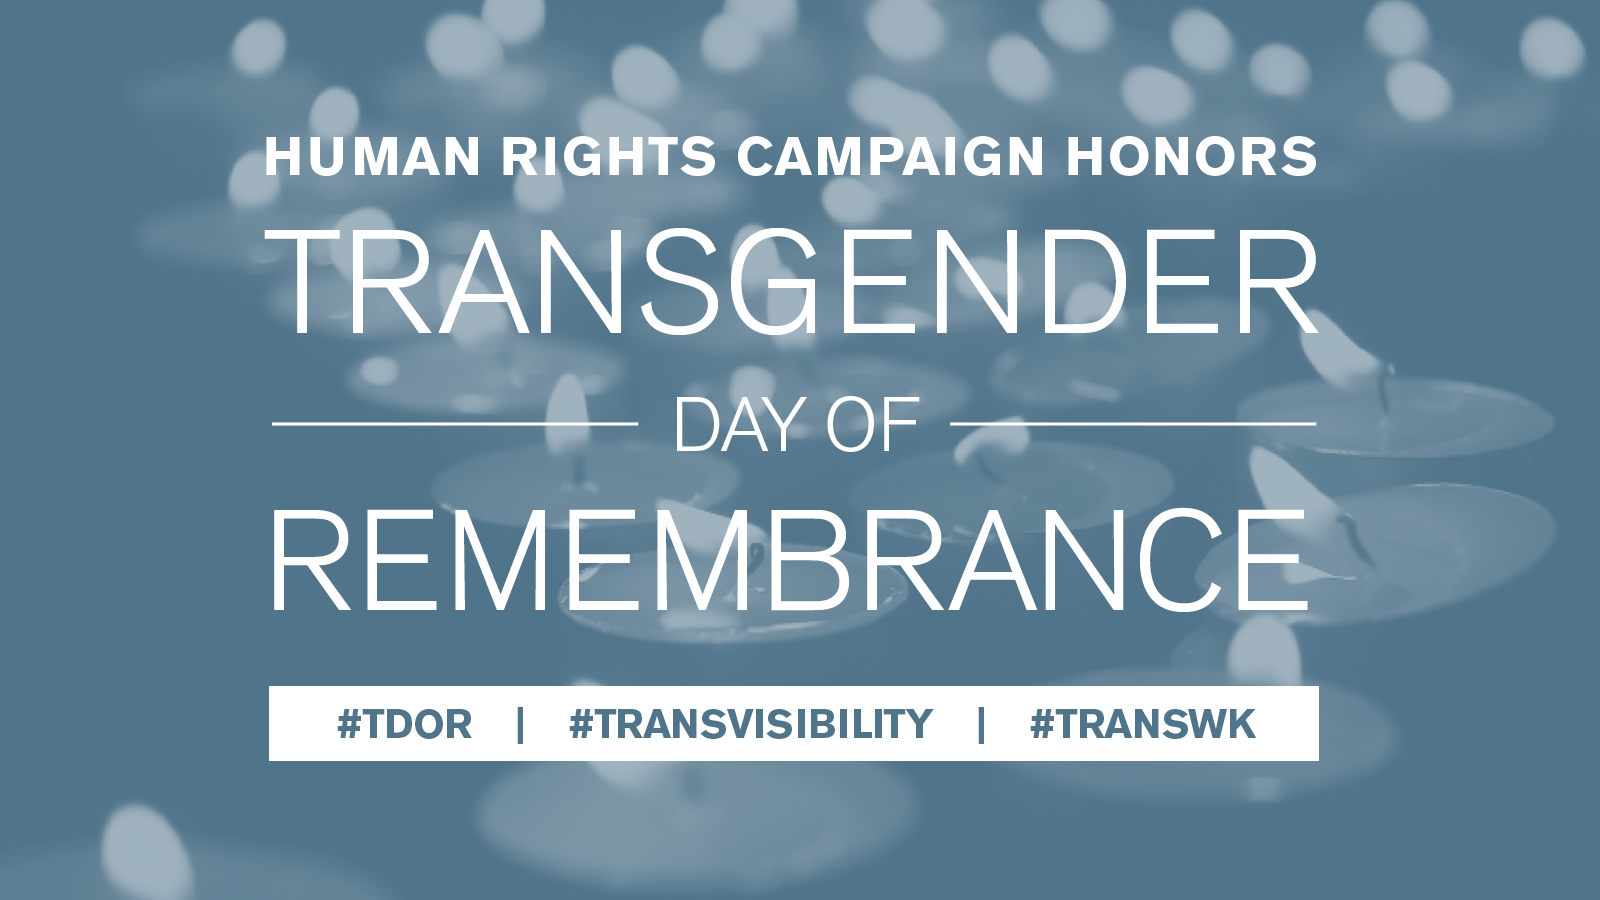 Transgender Day of Remembrance: Recommitting to Ending the Epidemic of Anti-Transgender Violence